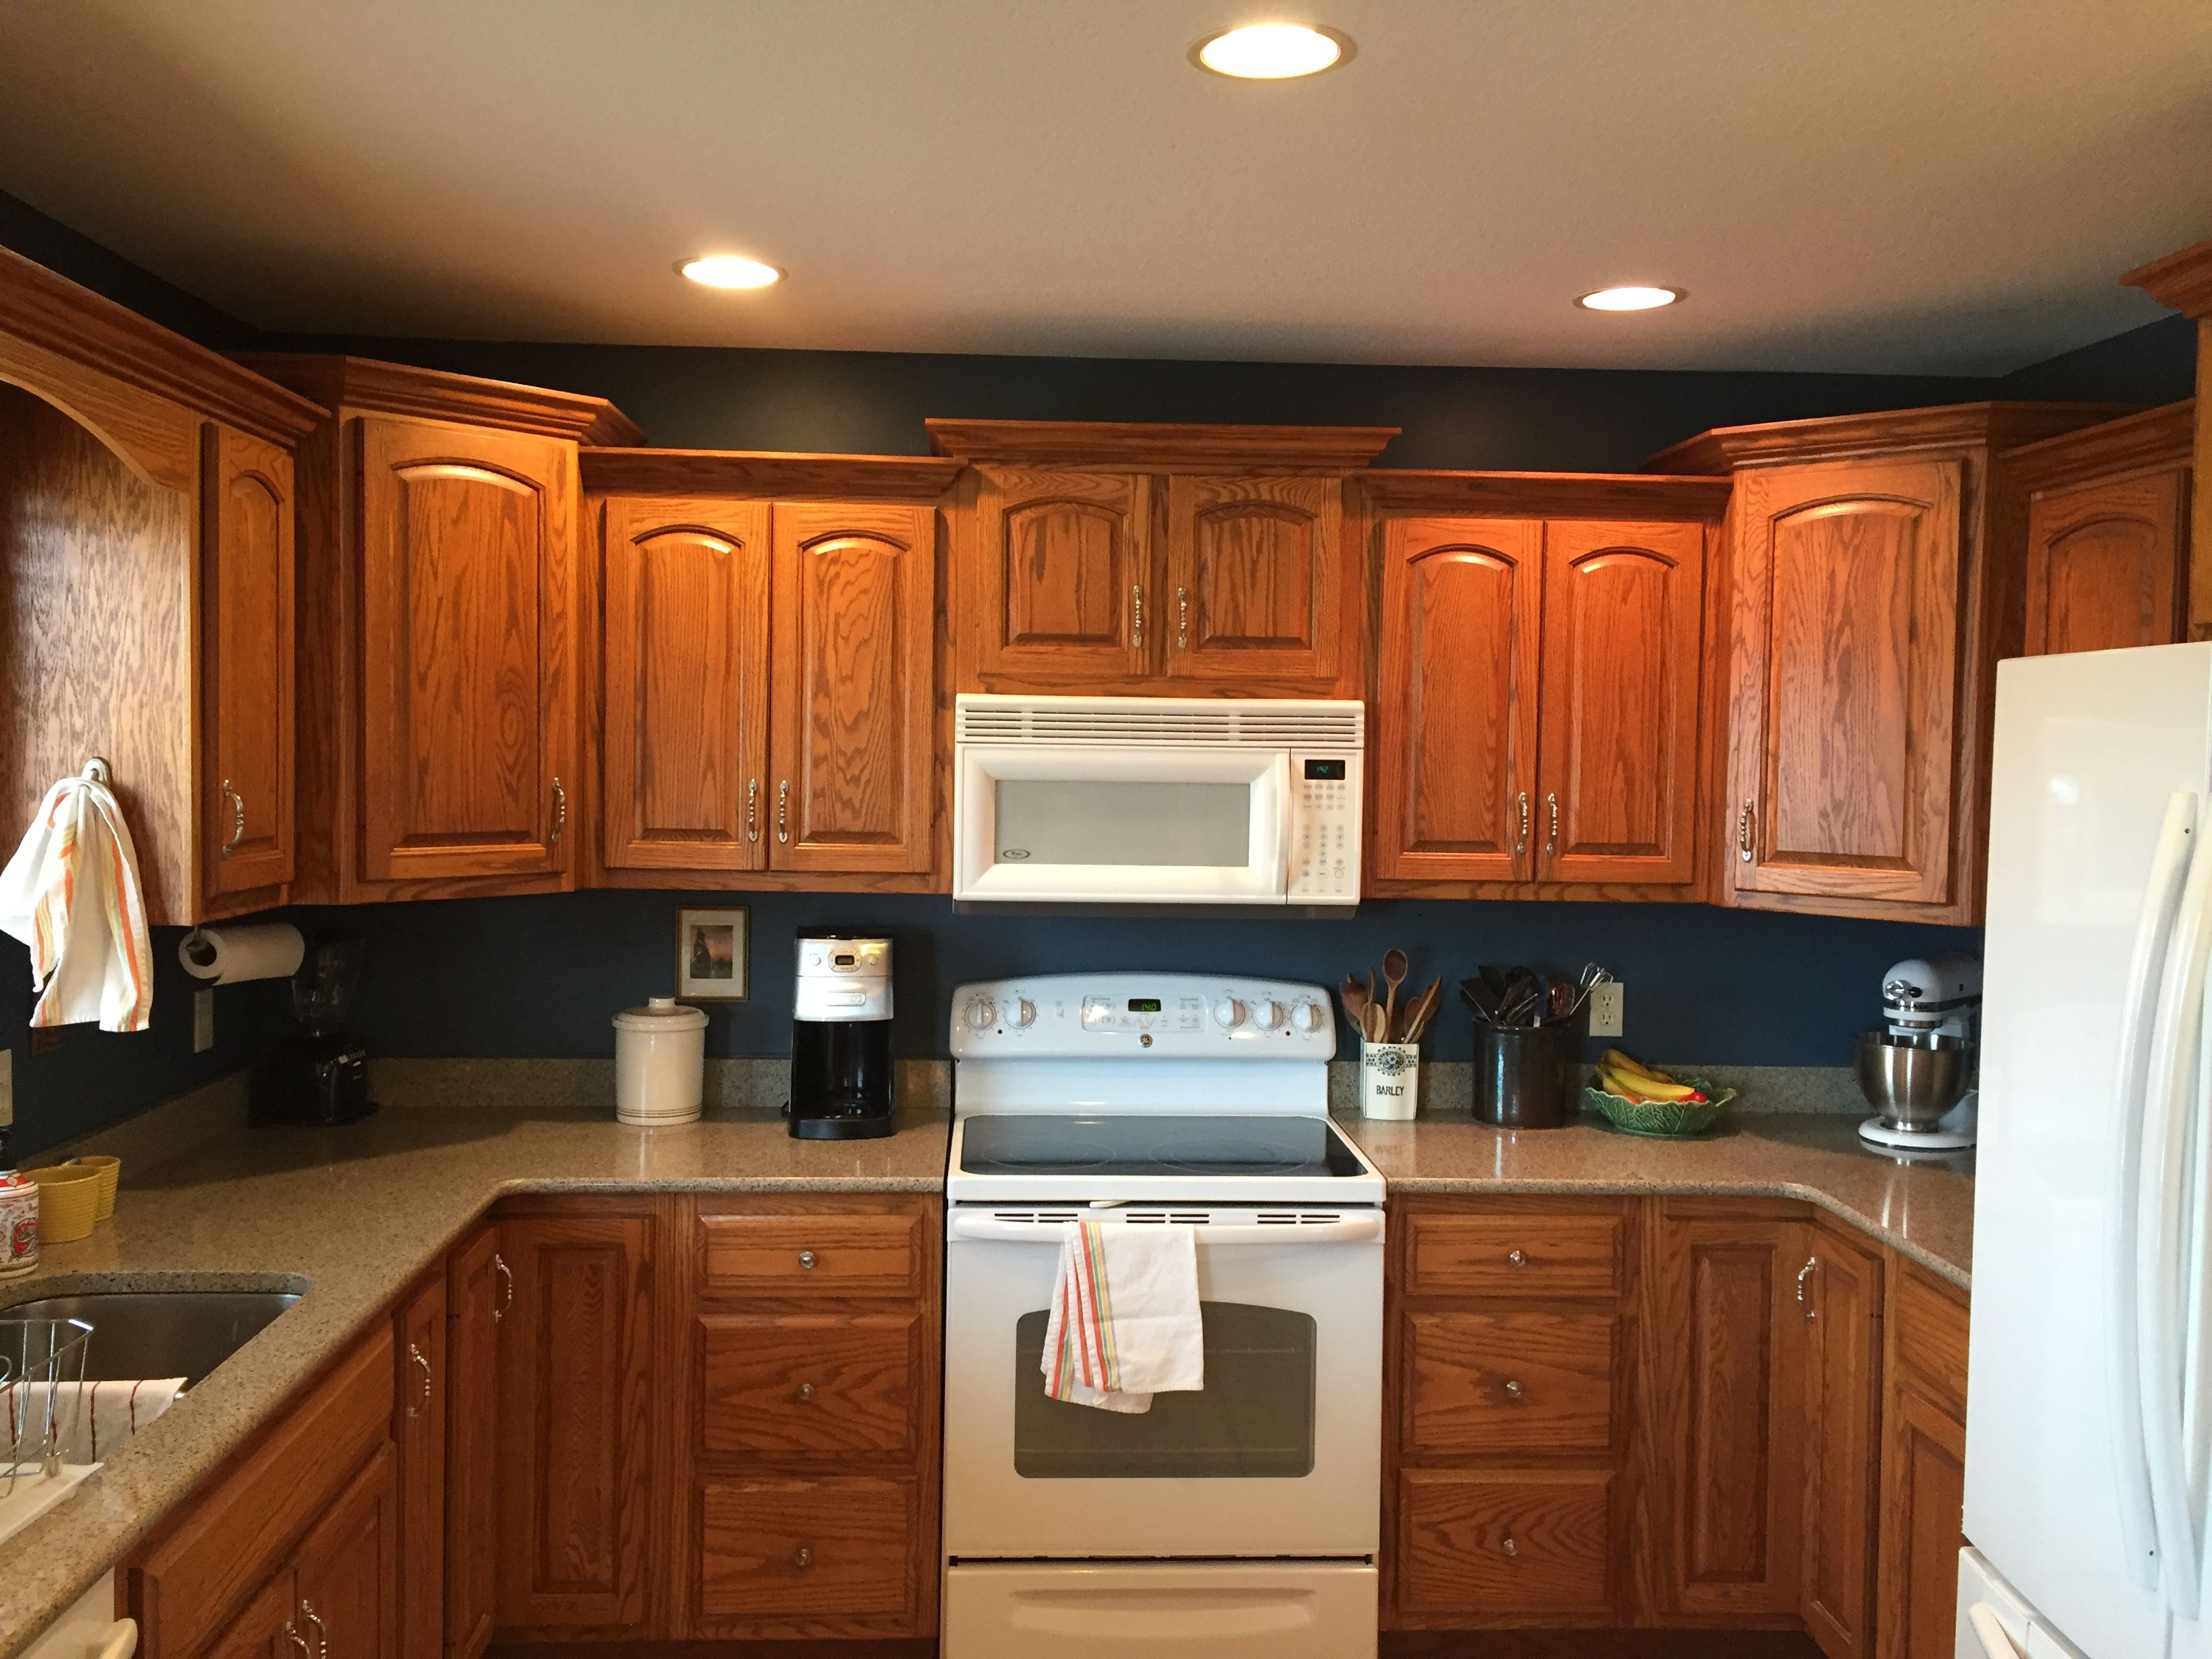 Navy Walls Honey Oak Cabinets Behr Shipwreck Home Depot Navy Kitchen Walls Honey Oak Cabinets Oak Kitchen